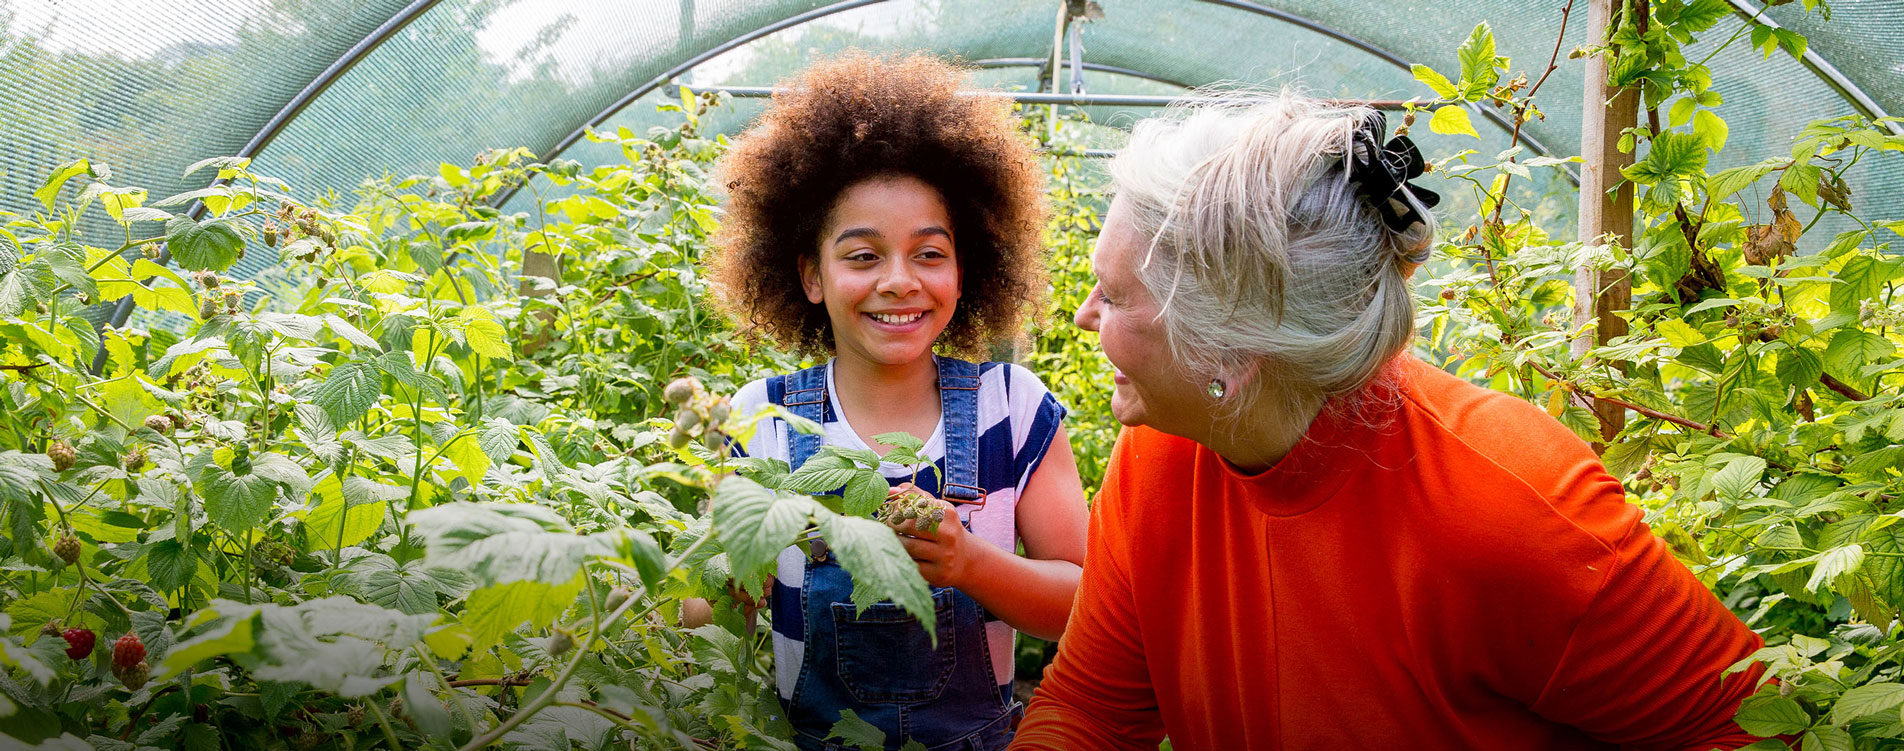 Grandmother and granddaughter working in community greenhouse